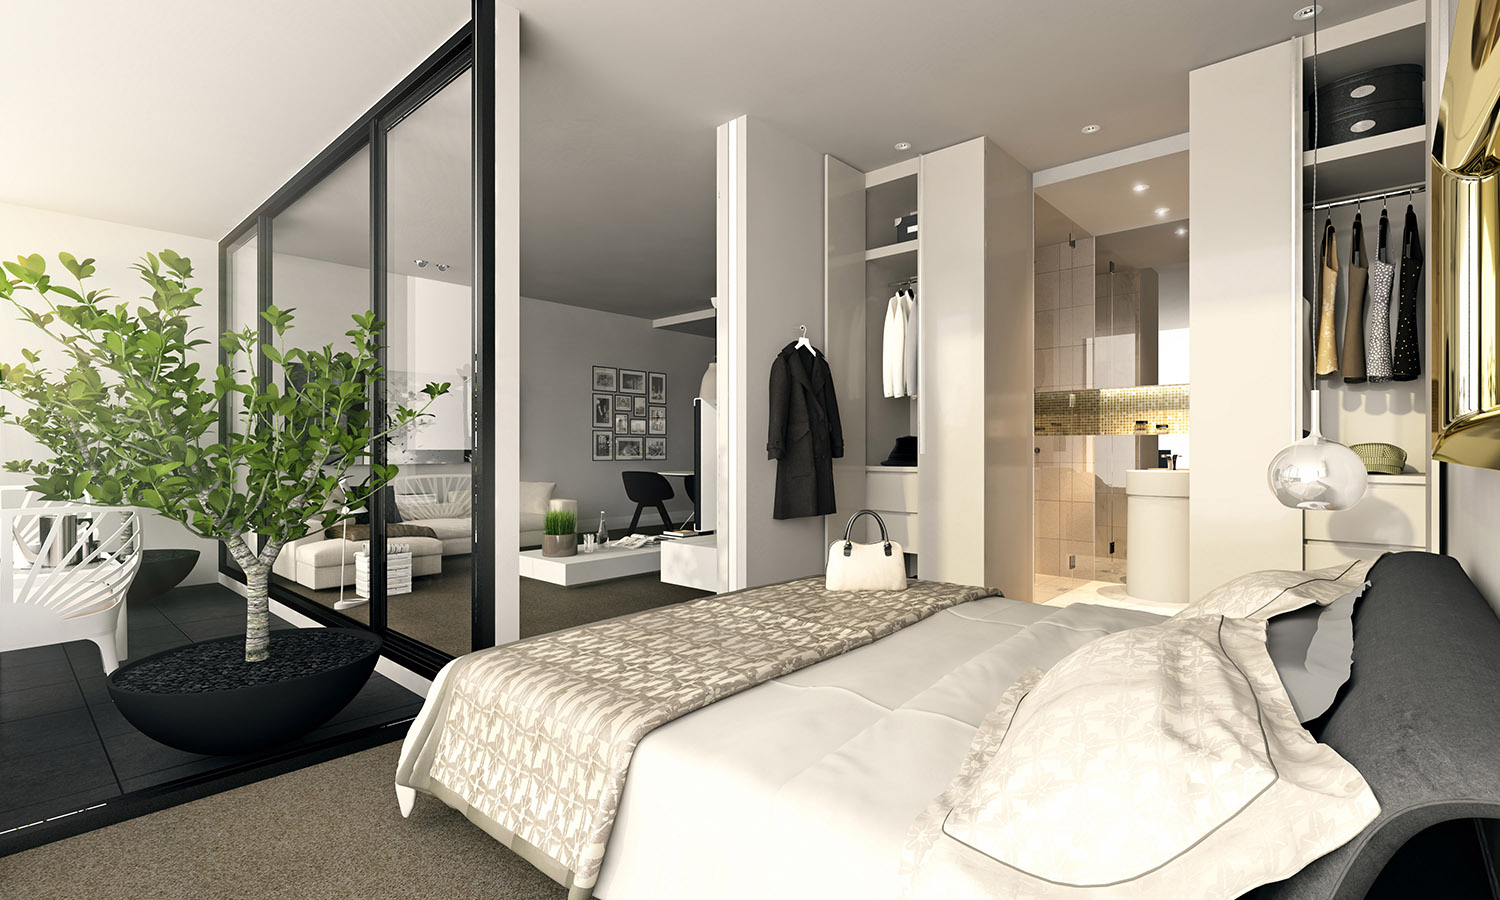 Studio apartment interiors inspiration for Apartment design interior